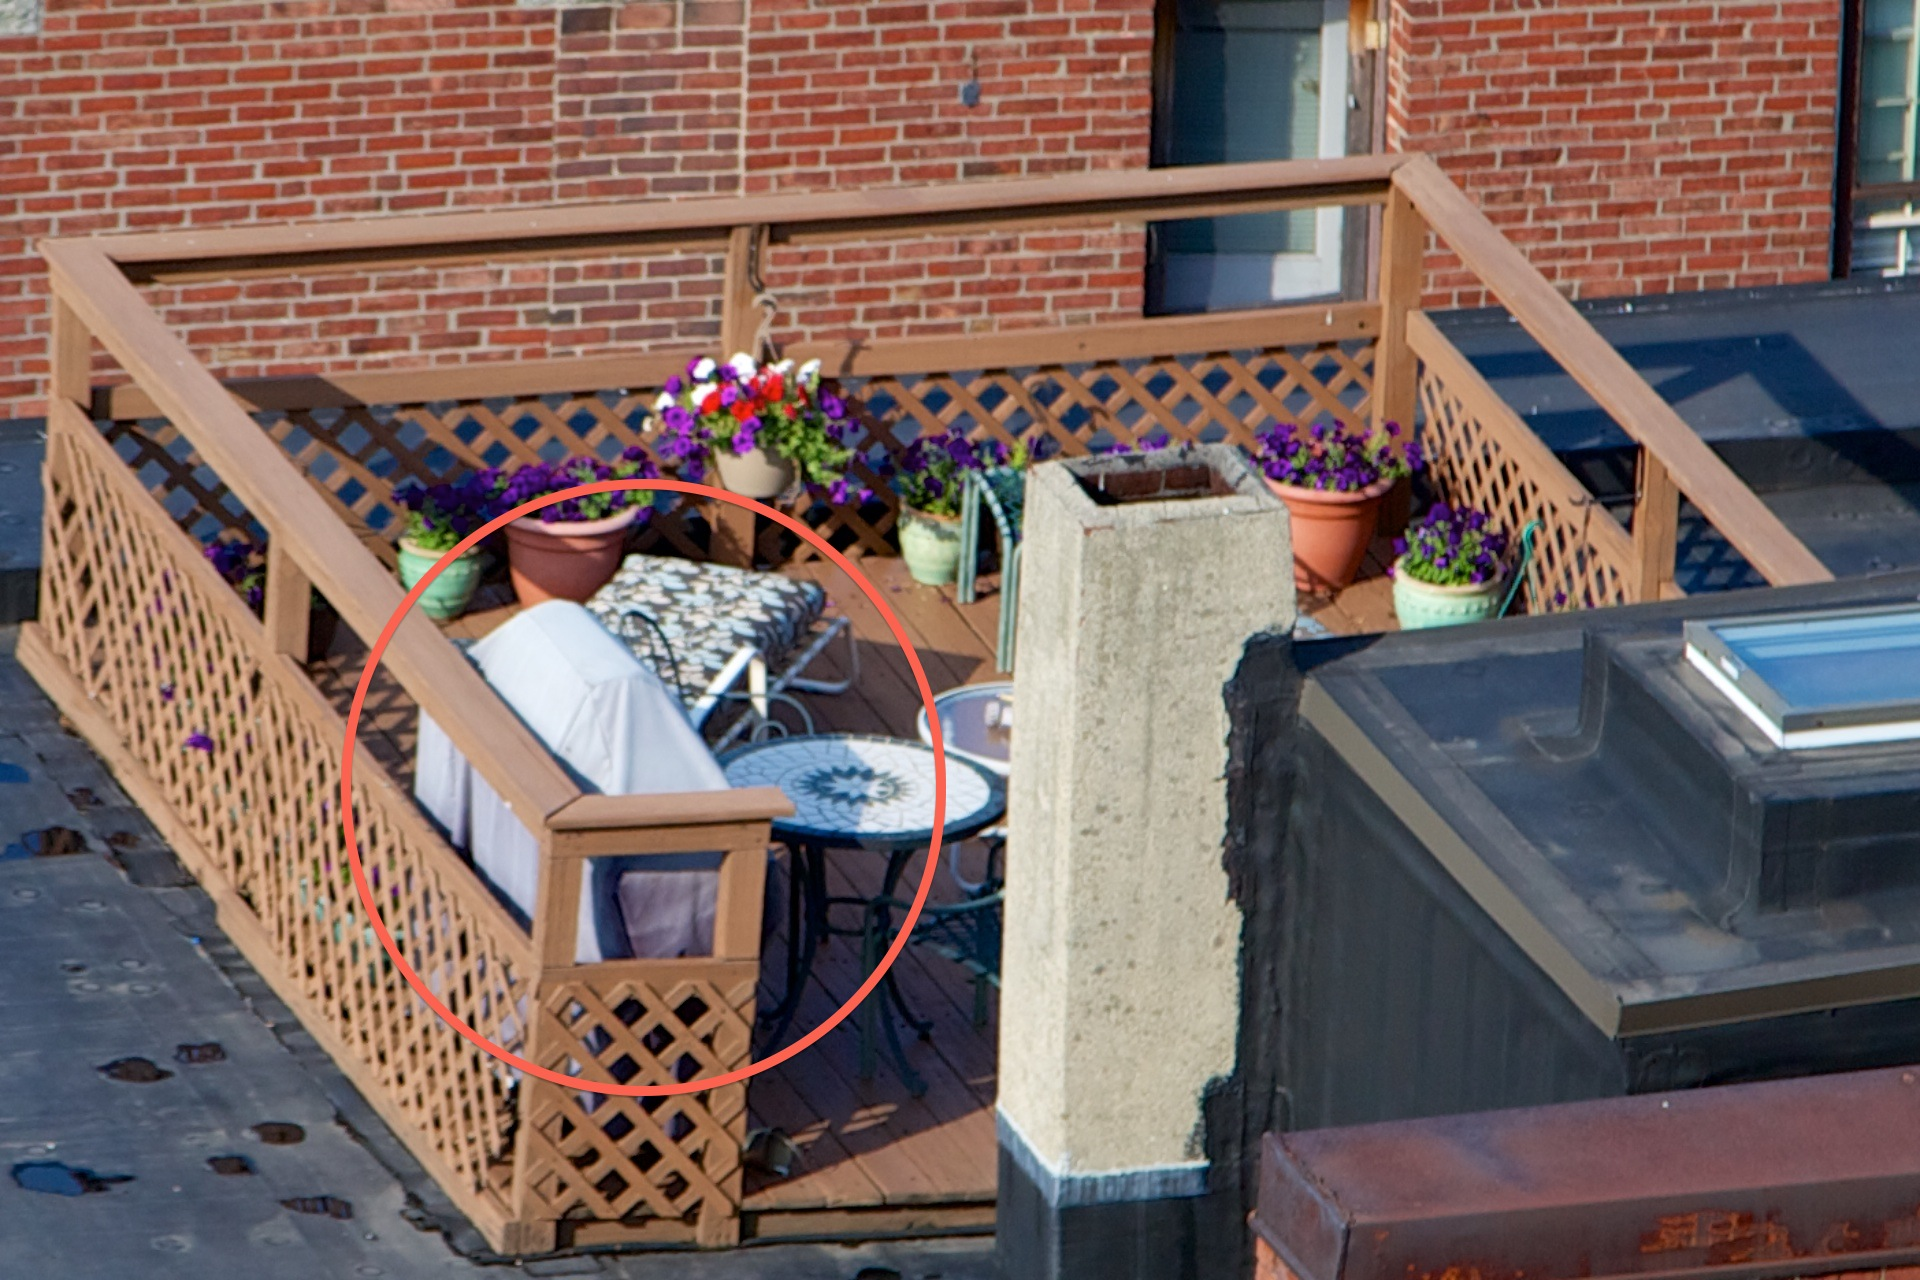 Gas grills common on north end roof decks photos reveal for Balcony on roof